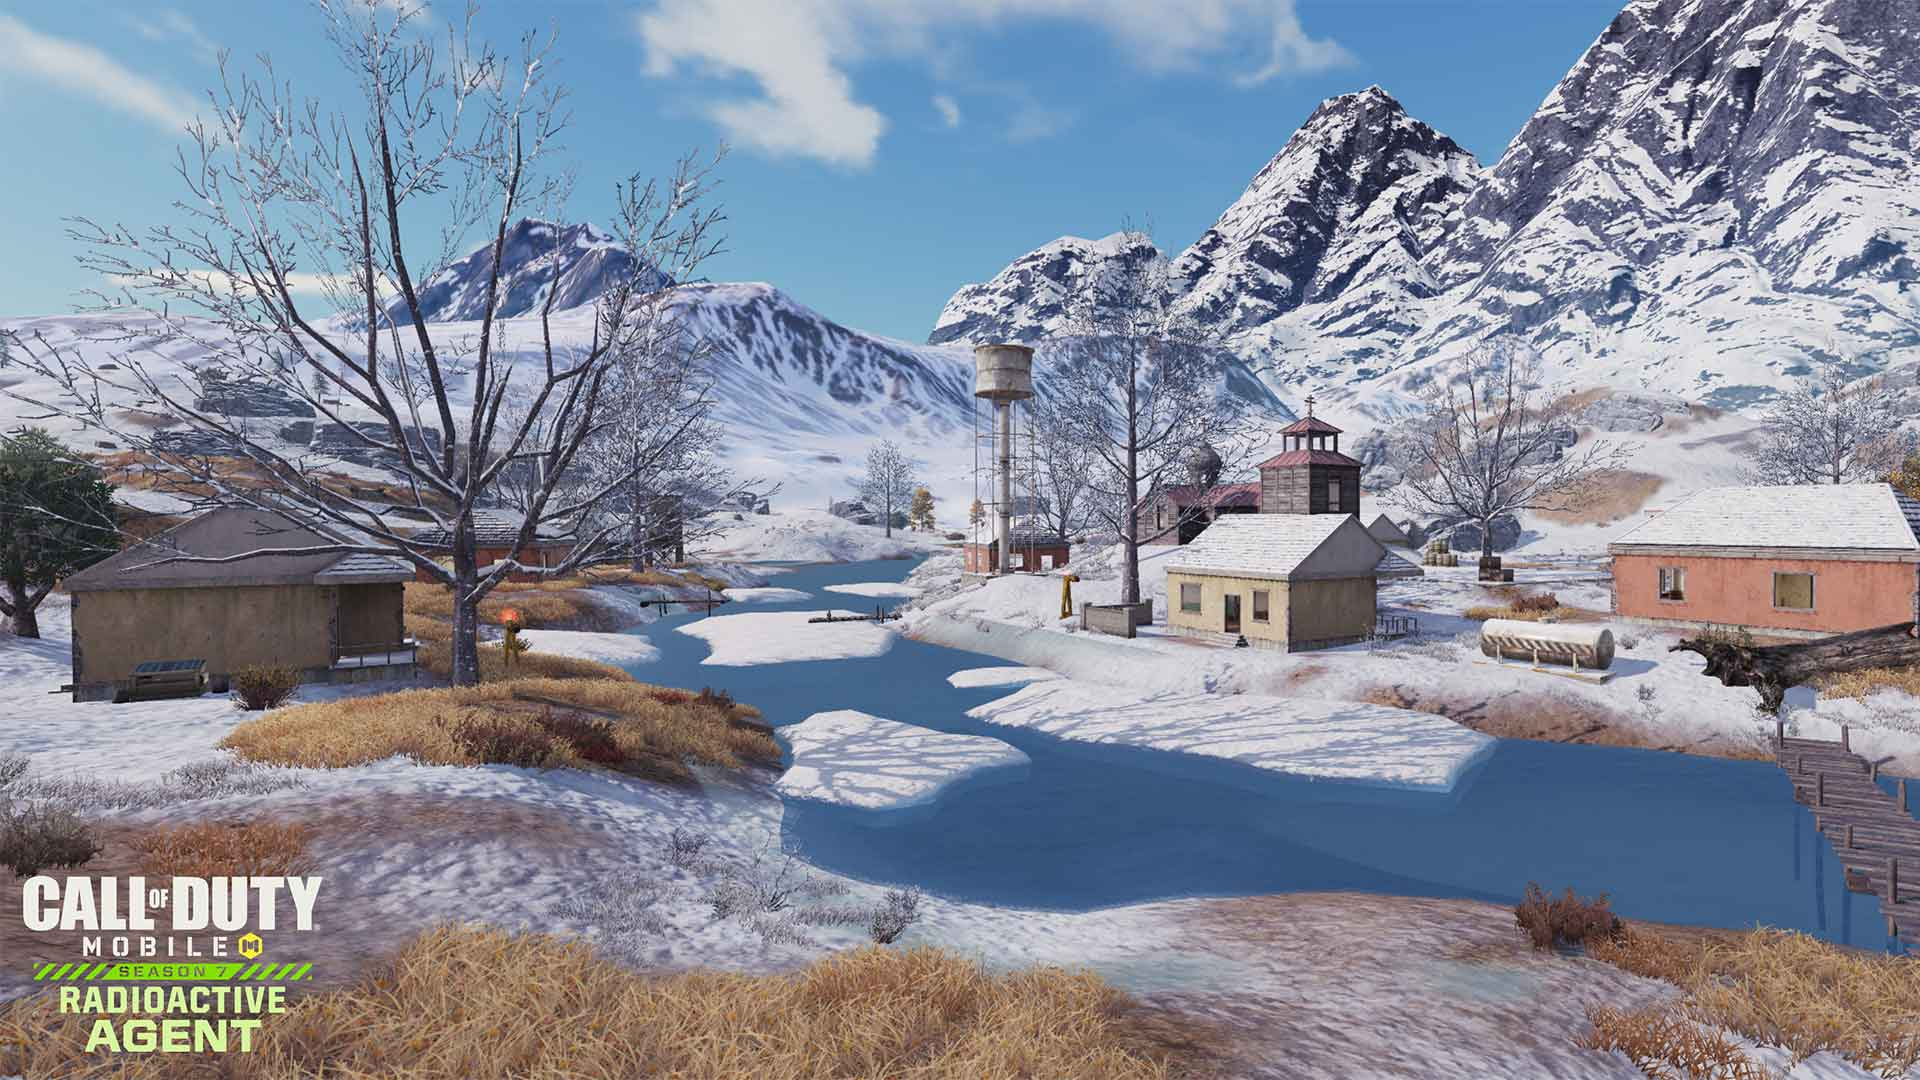 A Grand Tour of the Call of Duty®: Mobile Battle Royale Map Expansion - Image 3